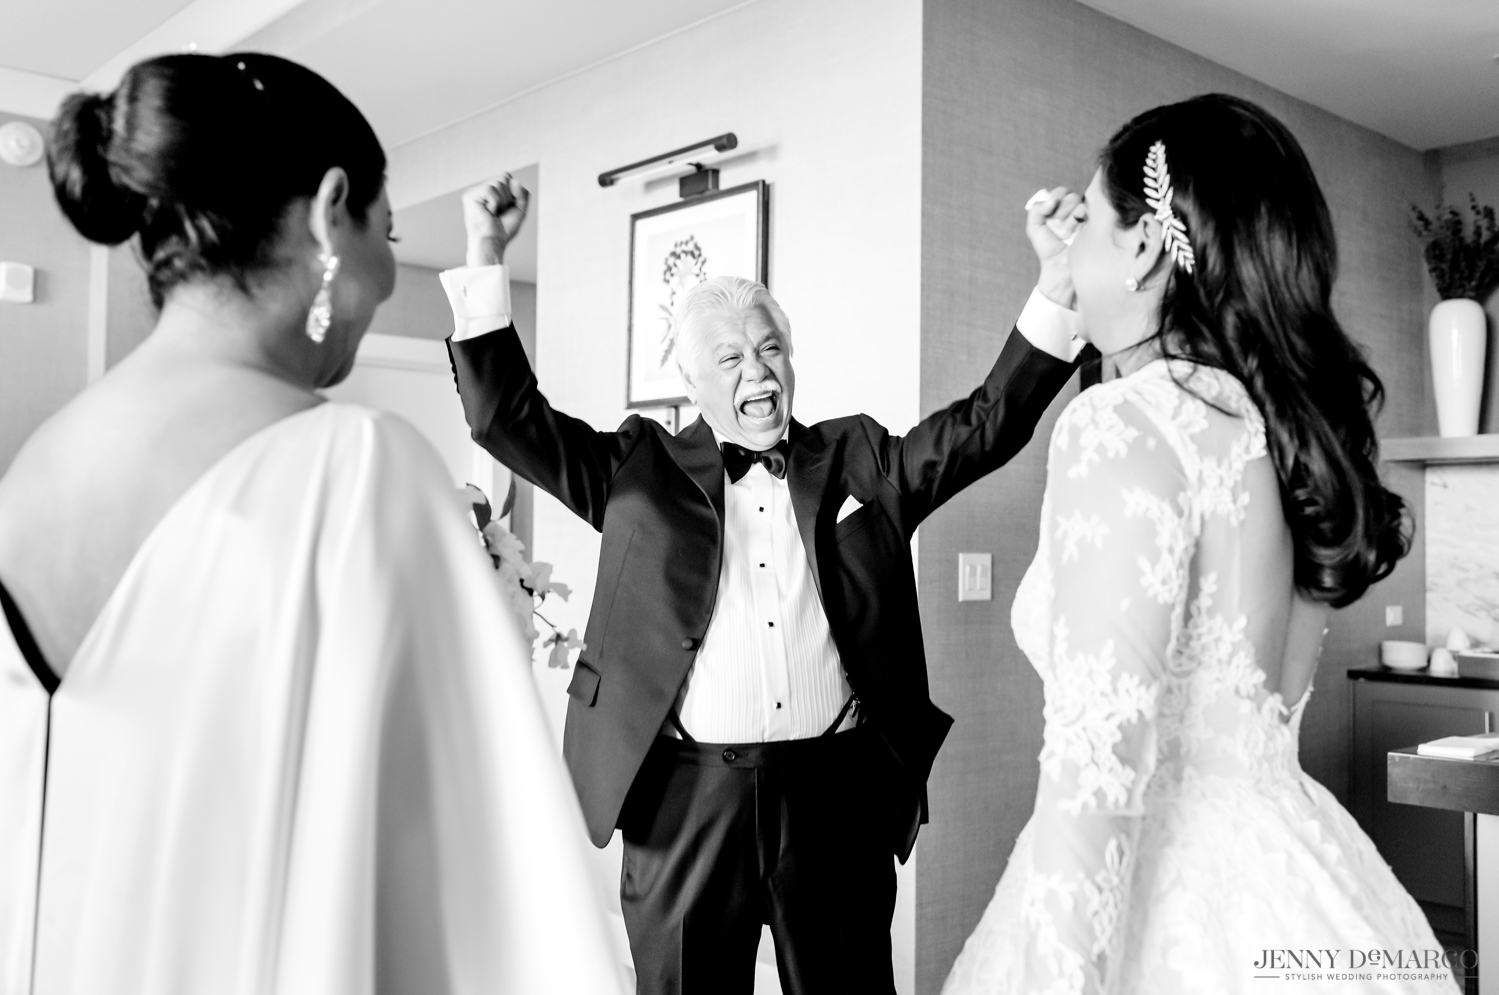 father of the bride ecstatic as he sees the bride in her dress for the first time